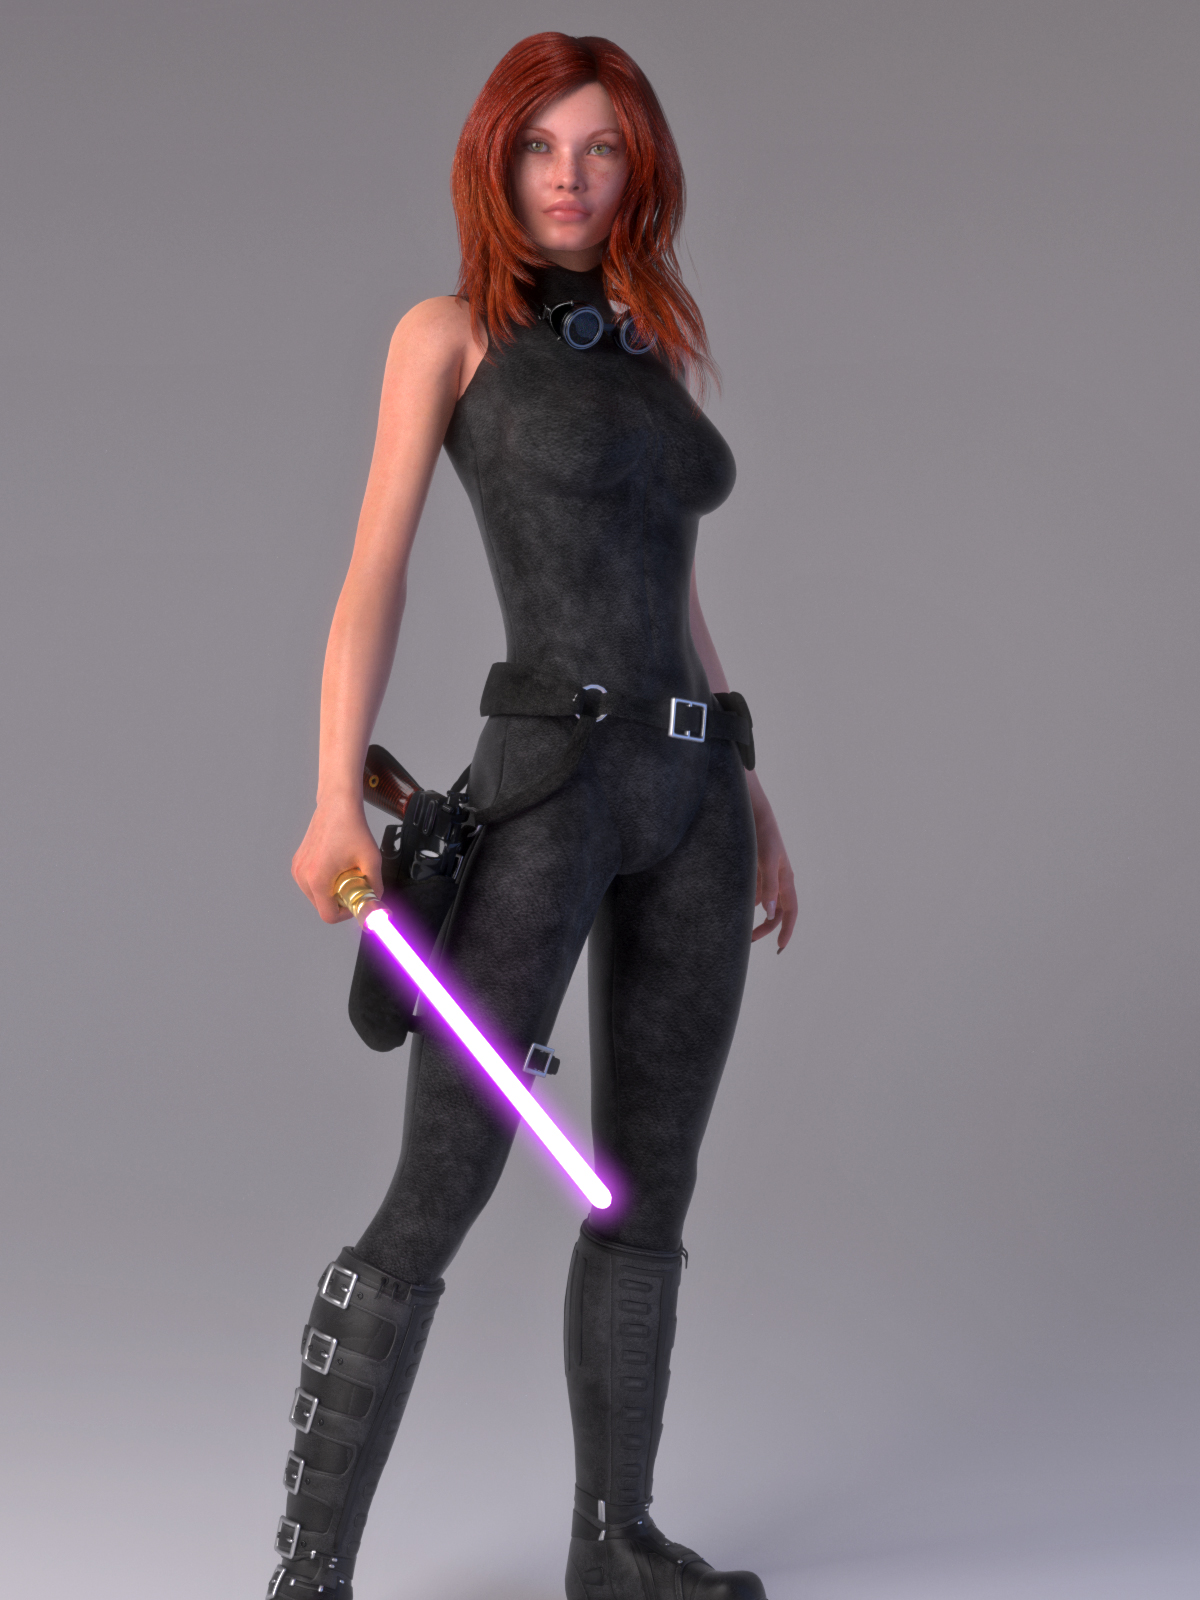 Mara Jade Possible Costume